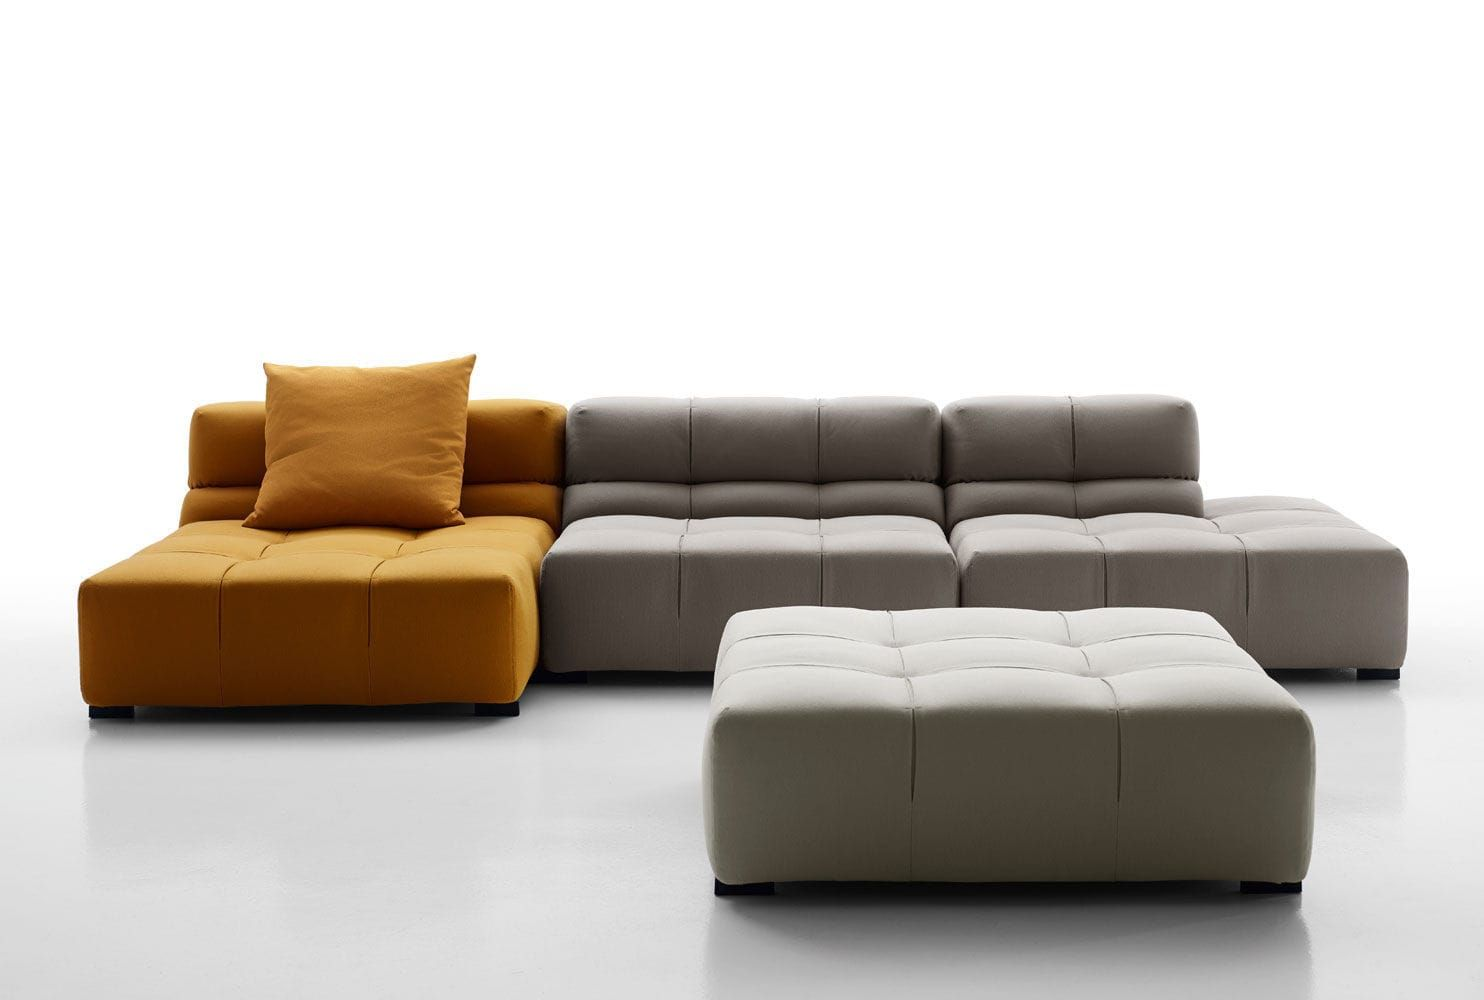 Sofa Module Pin By Garriosn On S沙发 In 2019 Modular Corner Sofa Sofa Sofa